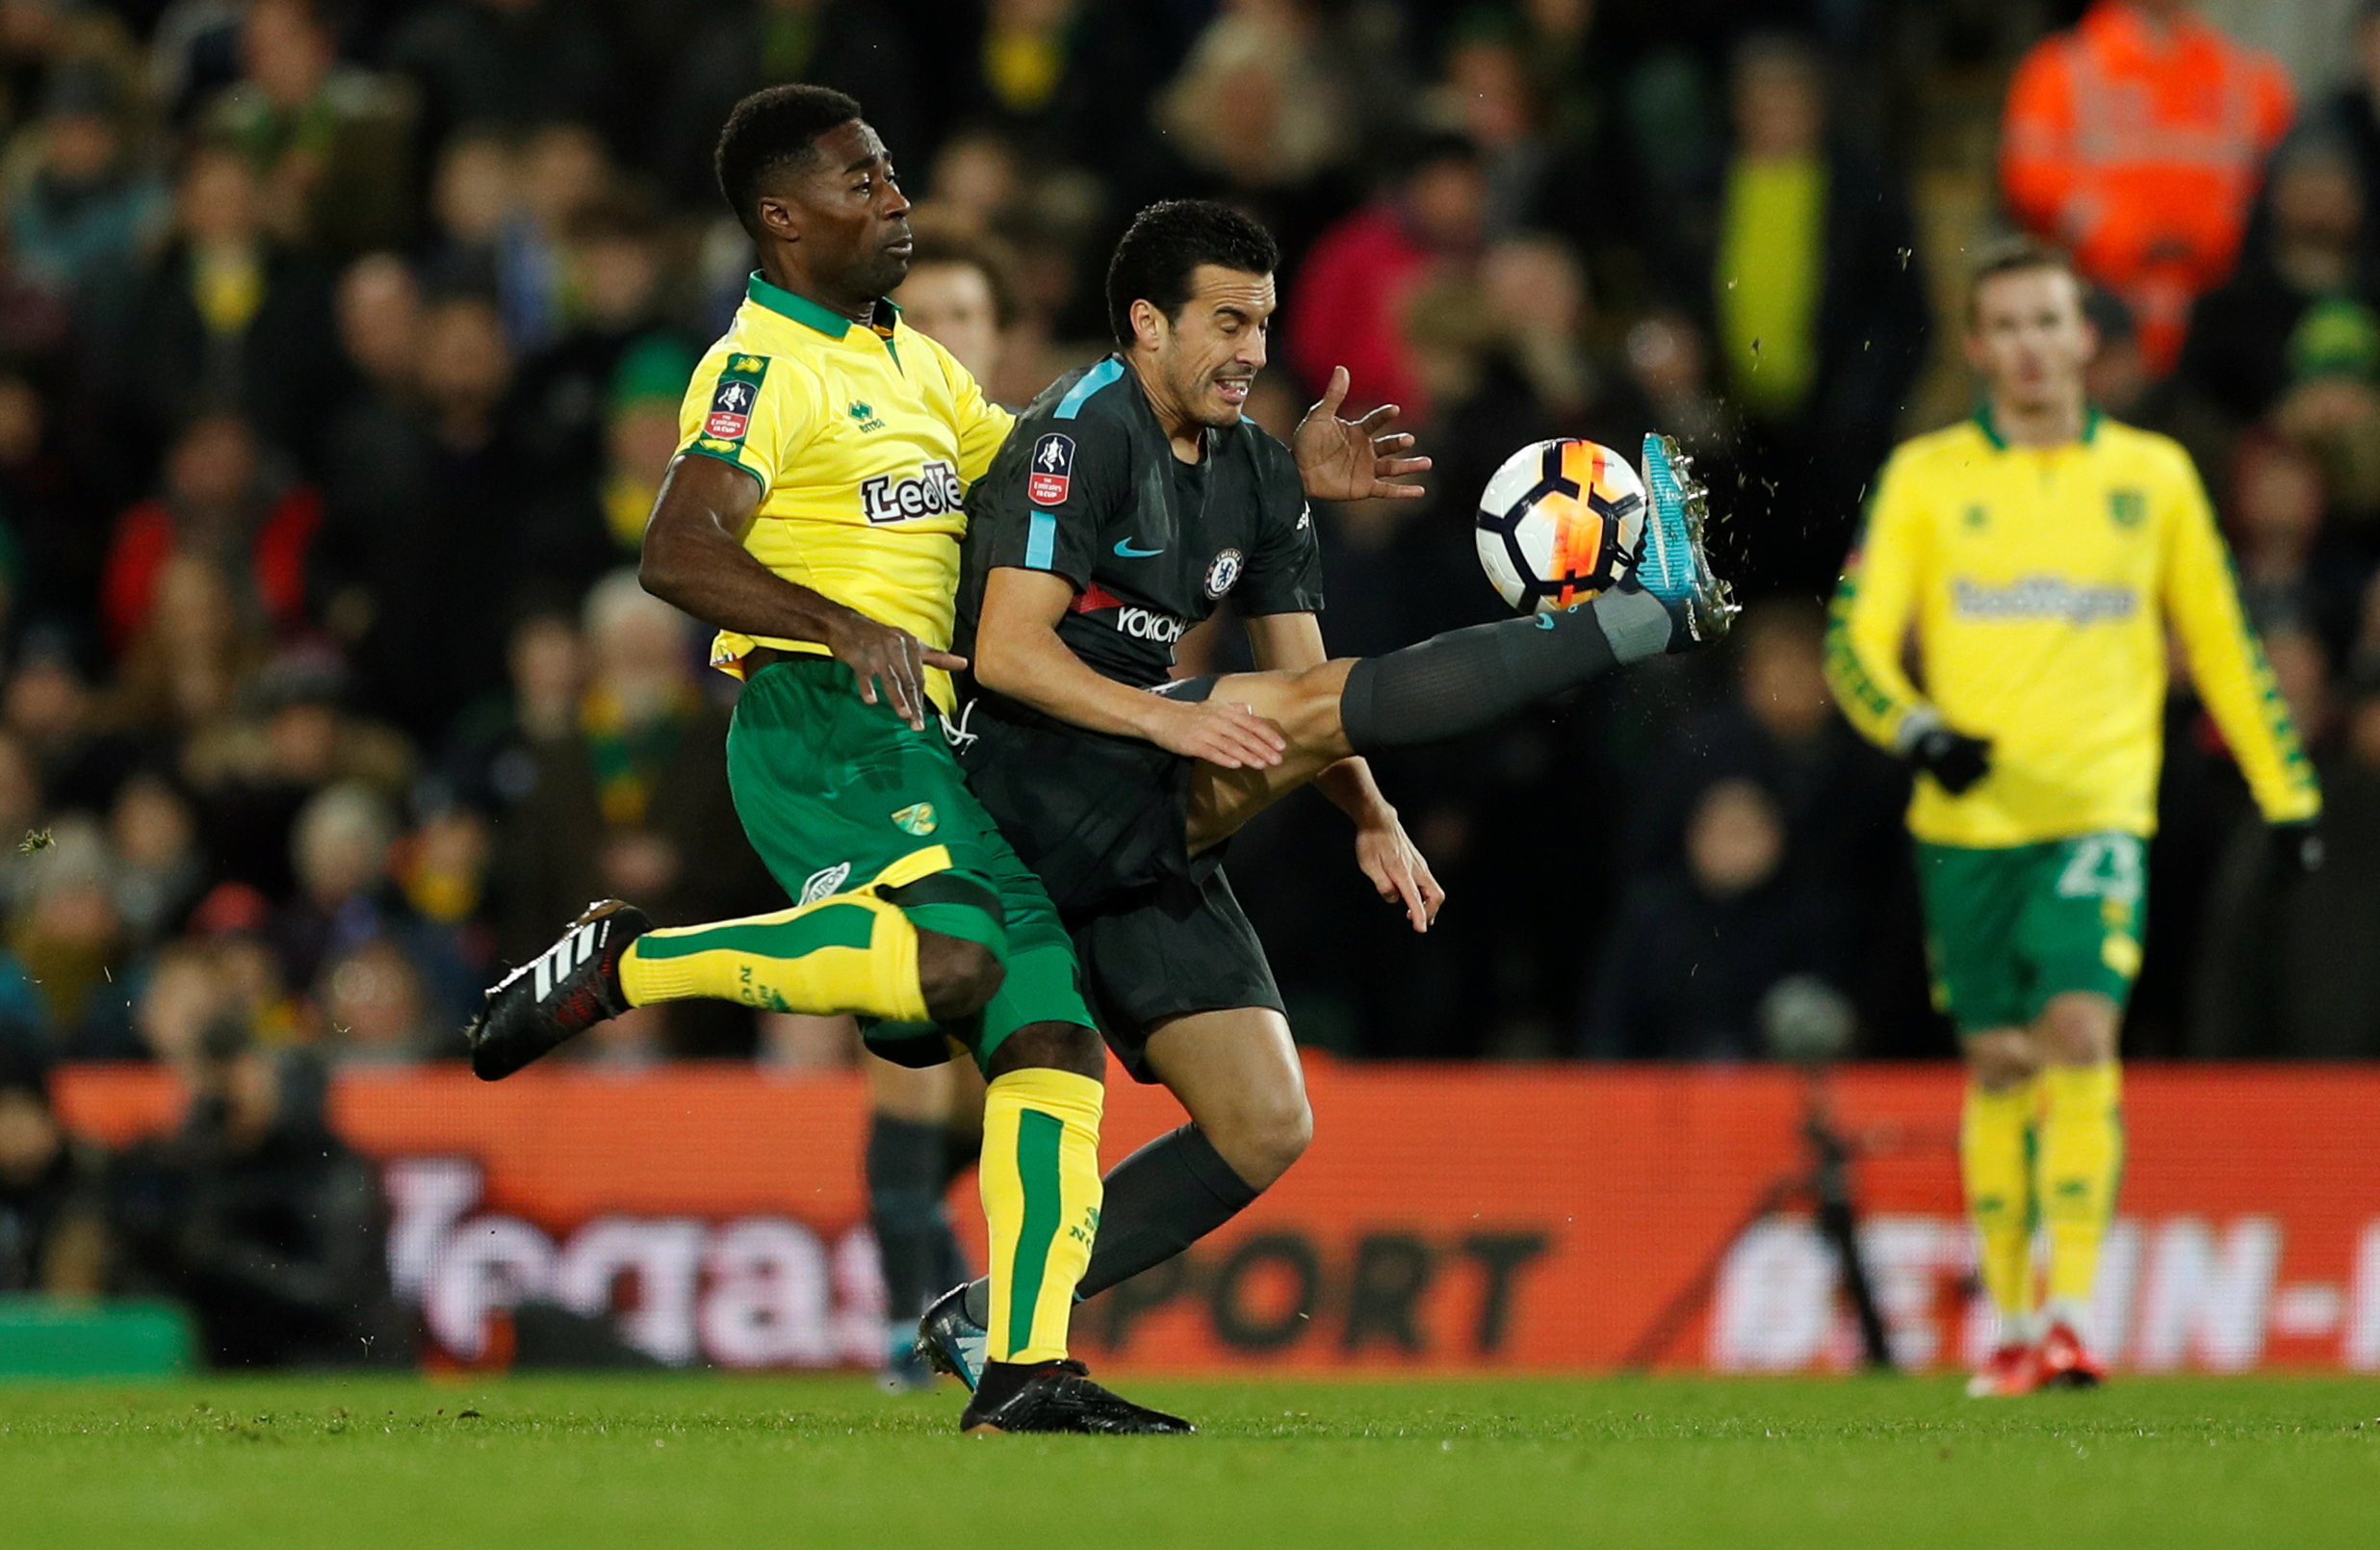 Fa cup norwich chelsea en direct angleterre etranger football - Coupe d angleterre resultat ...